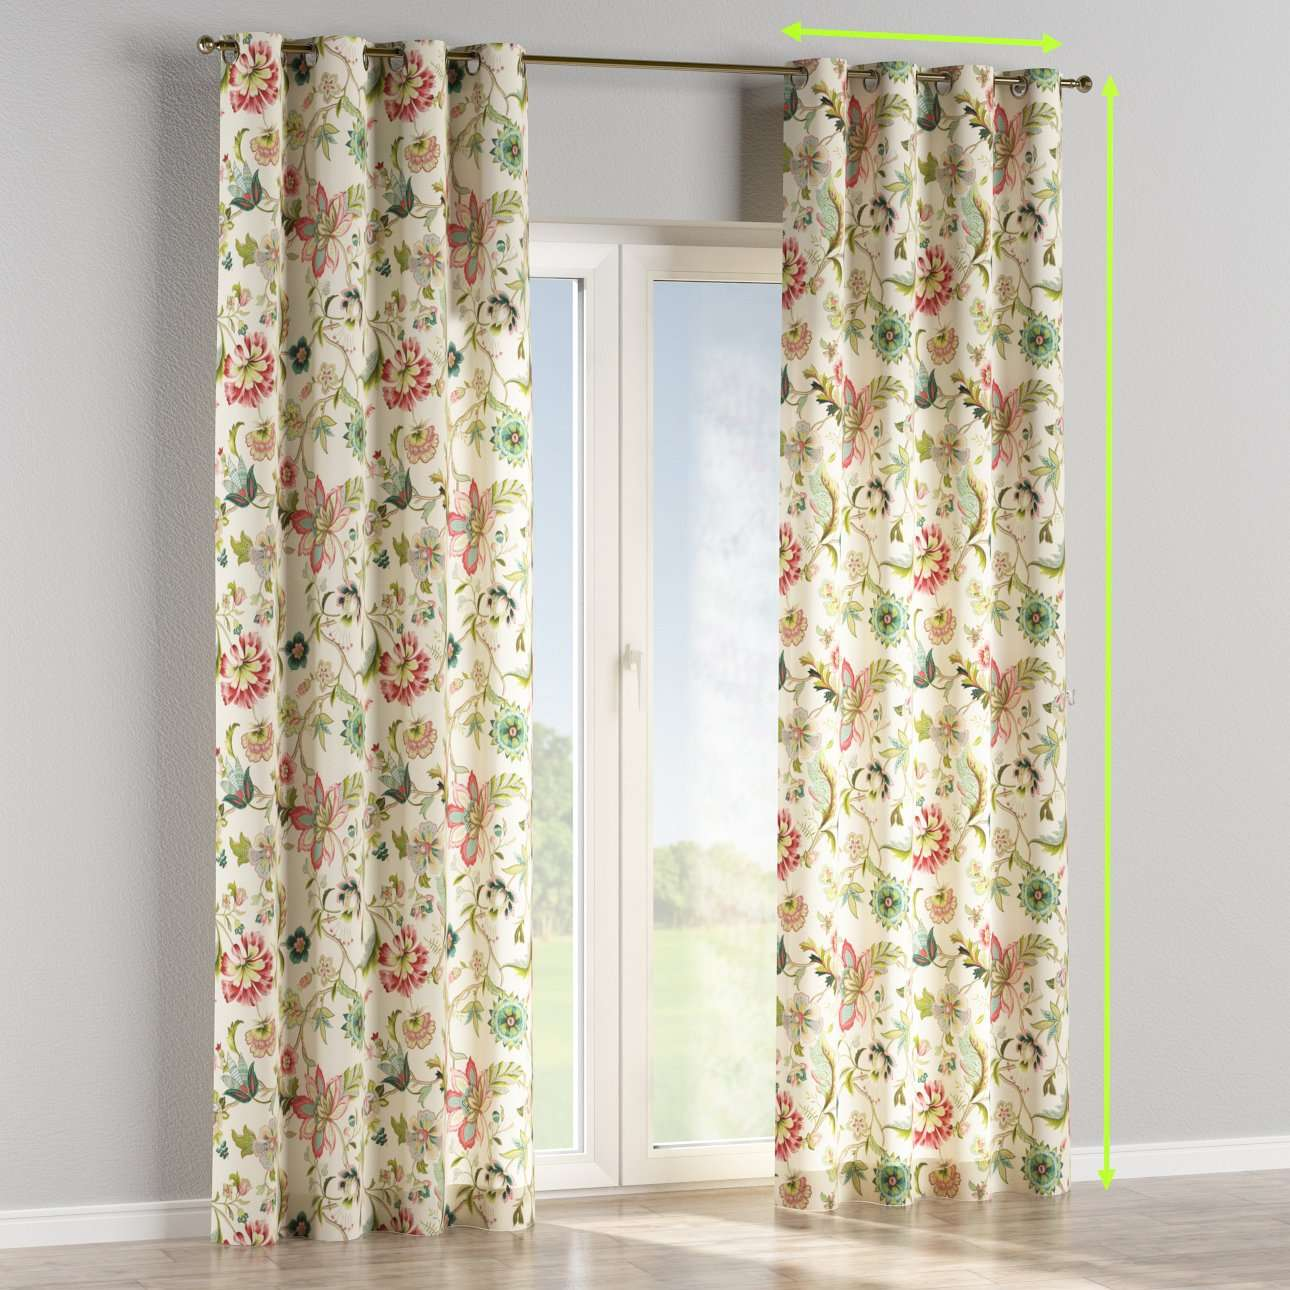 Eyelet lined curtains in collection Londres, fabric: 122-00